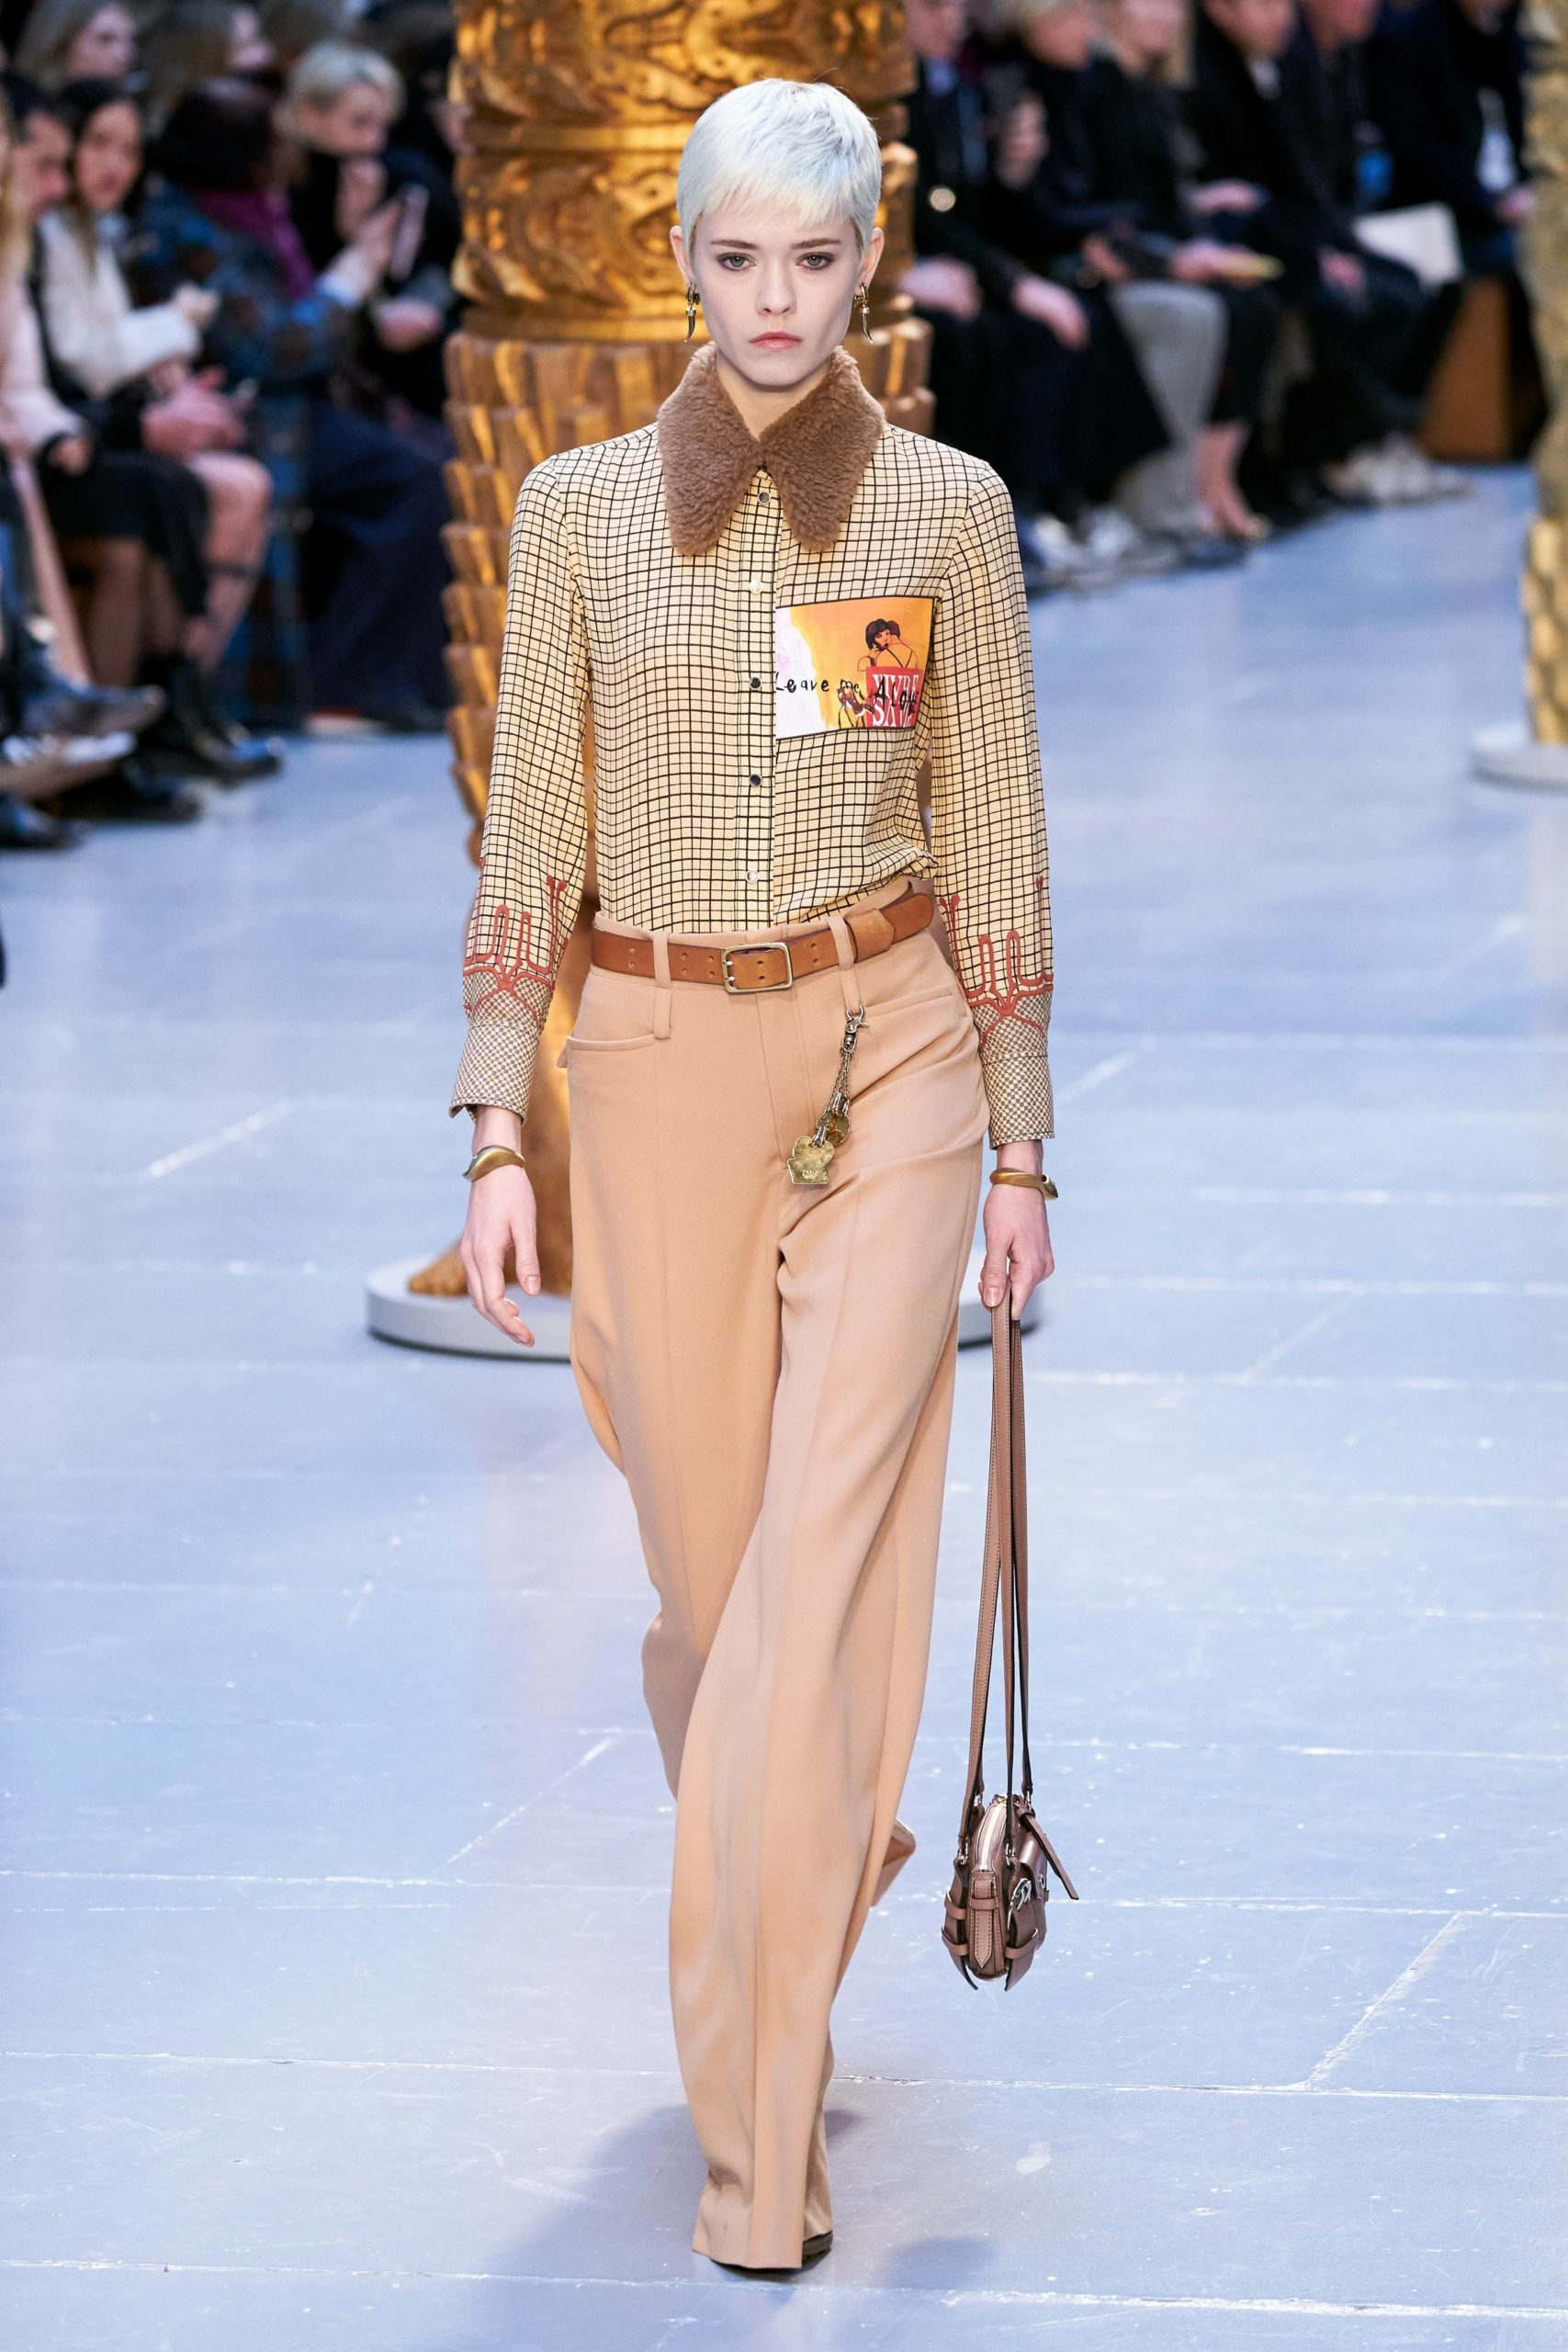 Chloe Fall Winter 2020 trends runway coverage Ready To Wear Vogue shaggy